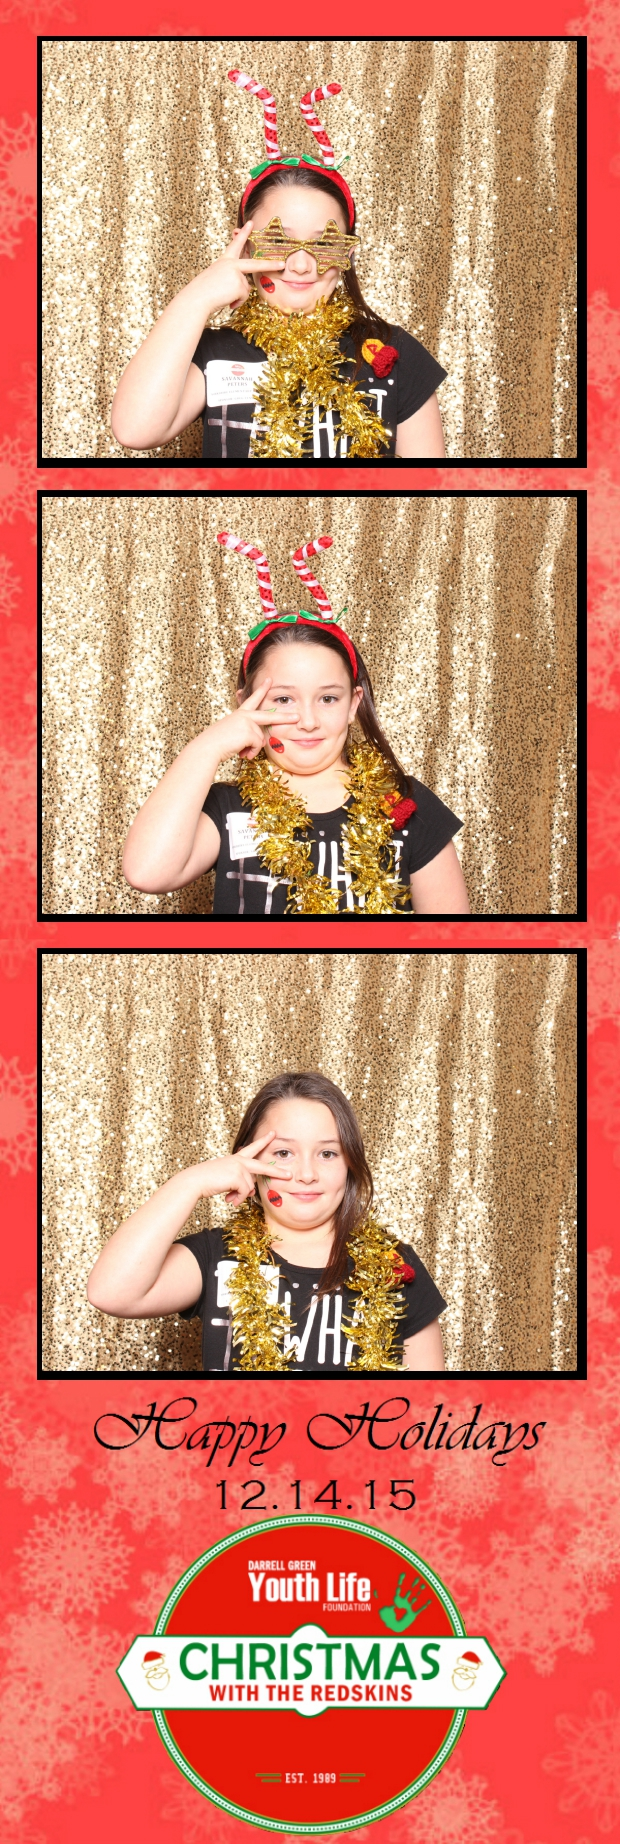 Guest House Events Photo Booth DGYLF Strips (29).jpg